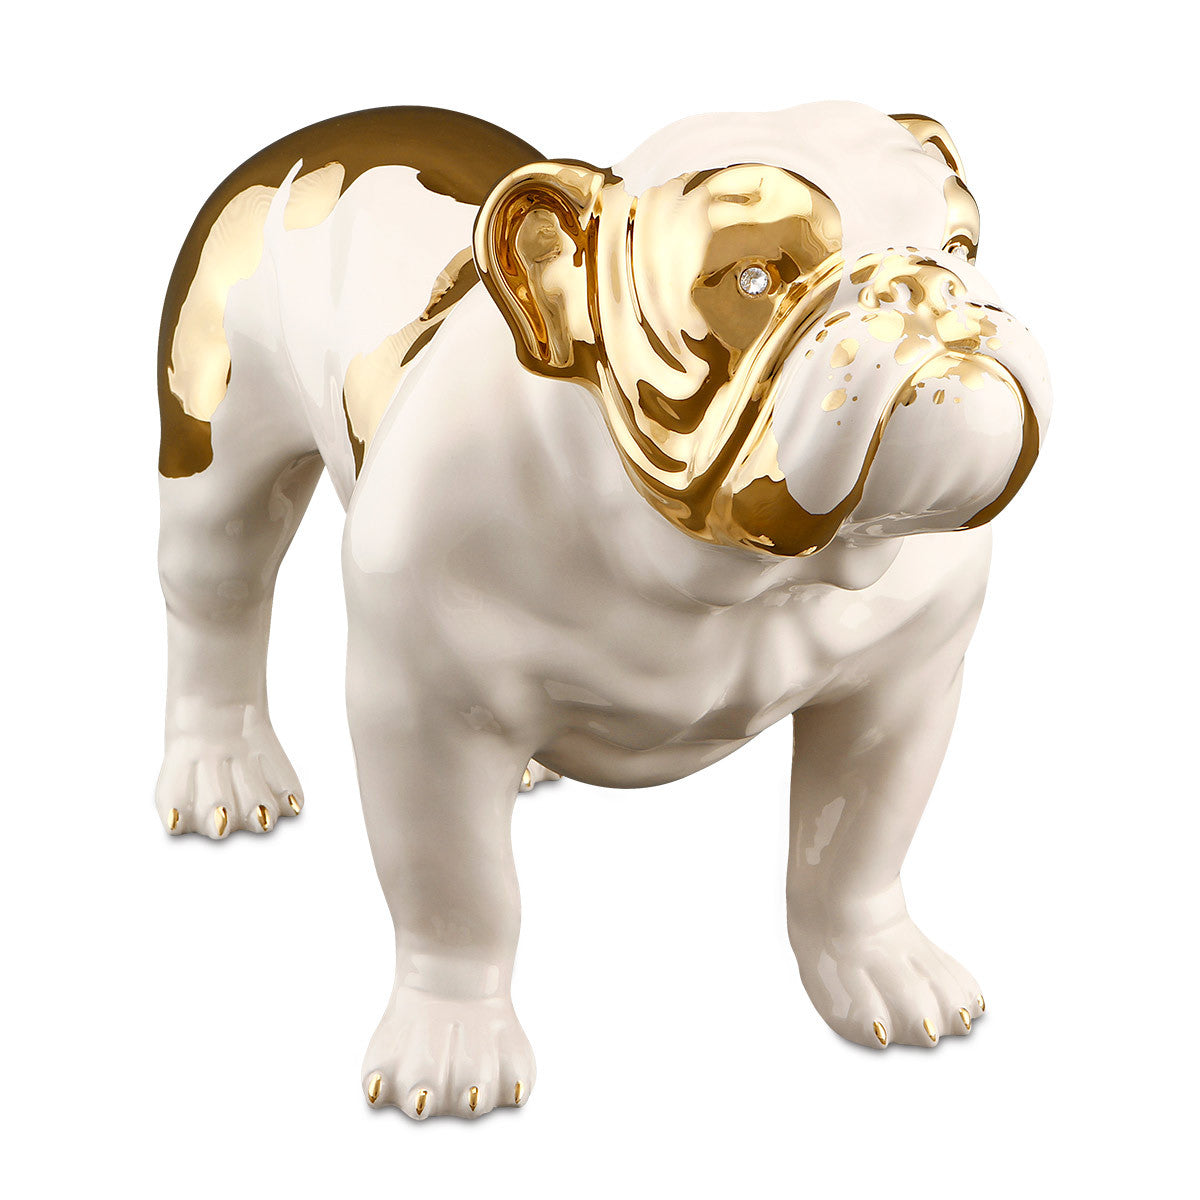 Hand Painted Italian Ceramic english bulldog statue-24kt gold-animal gifts-luxury home decor